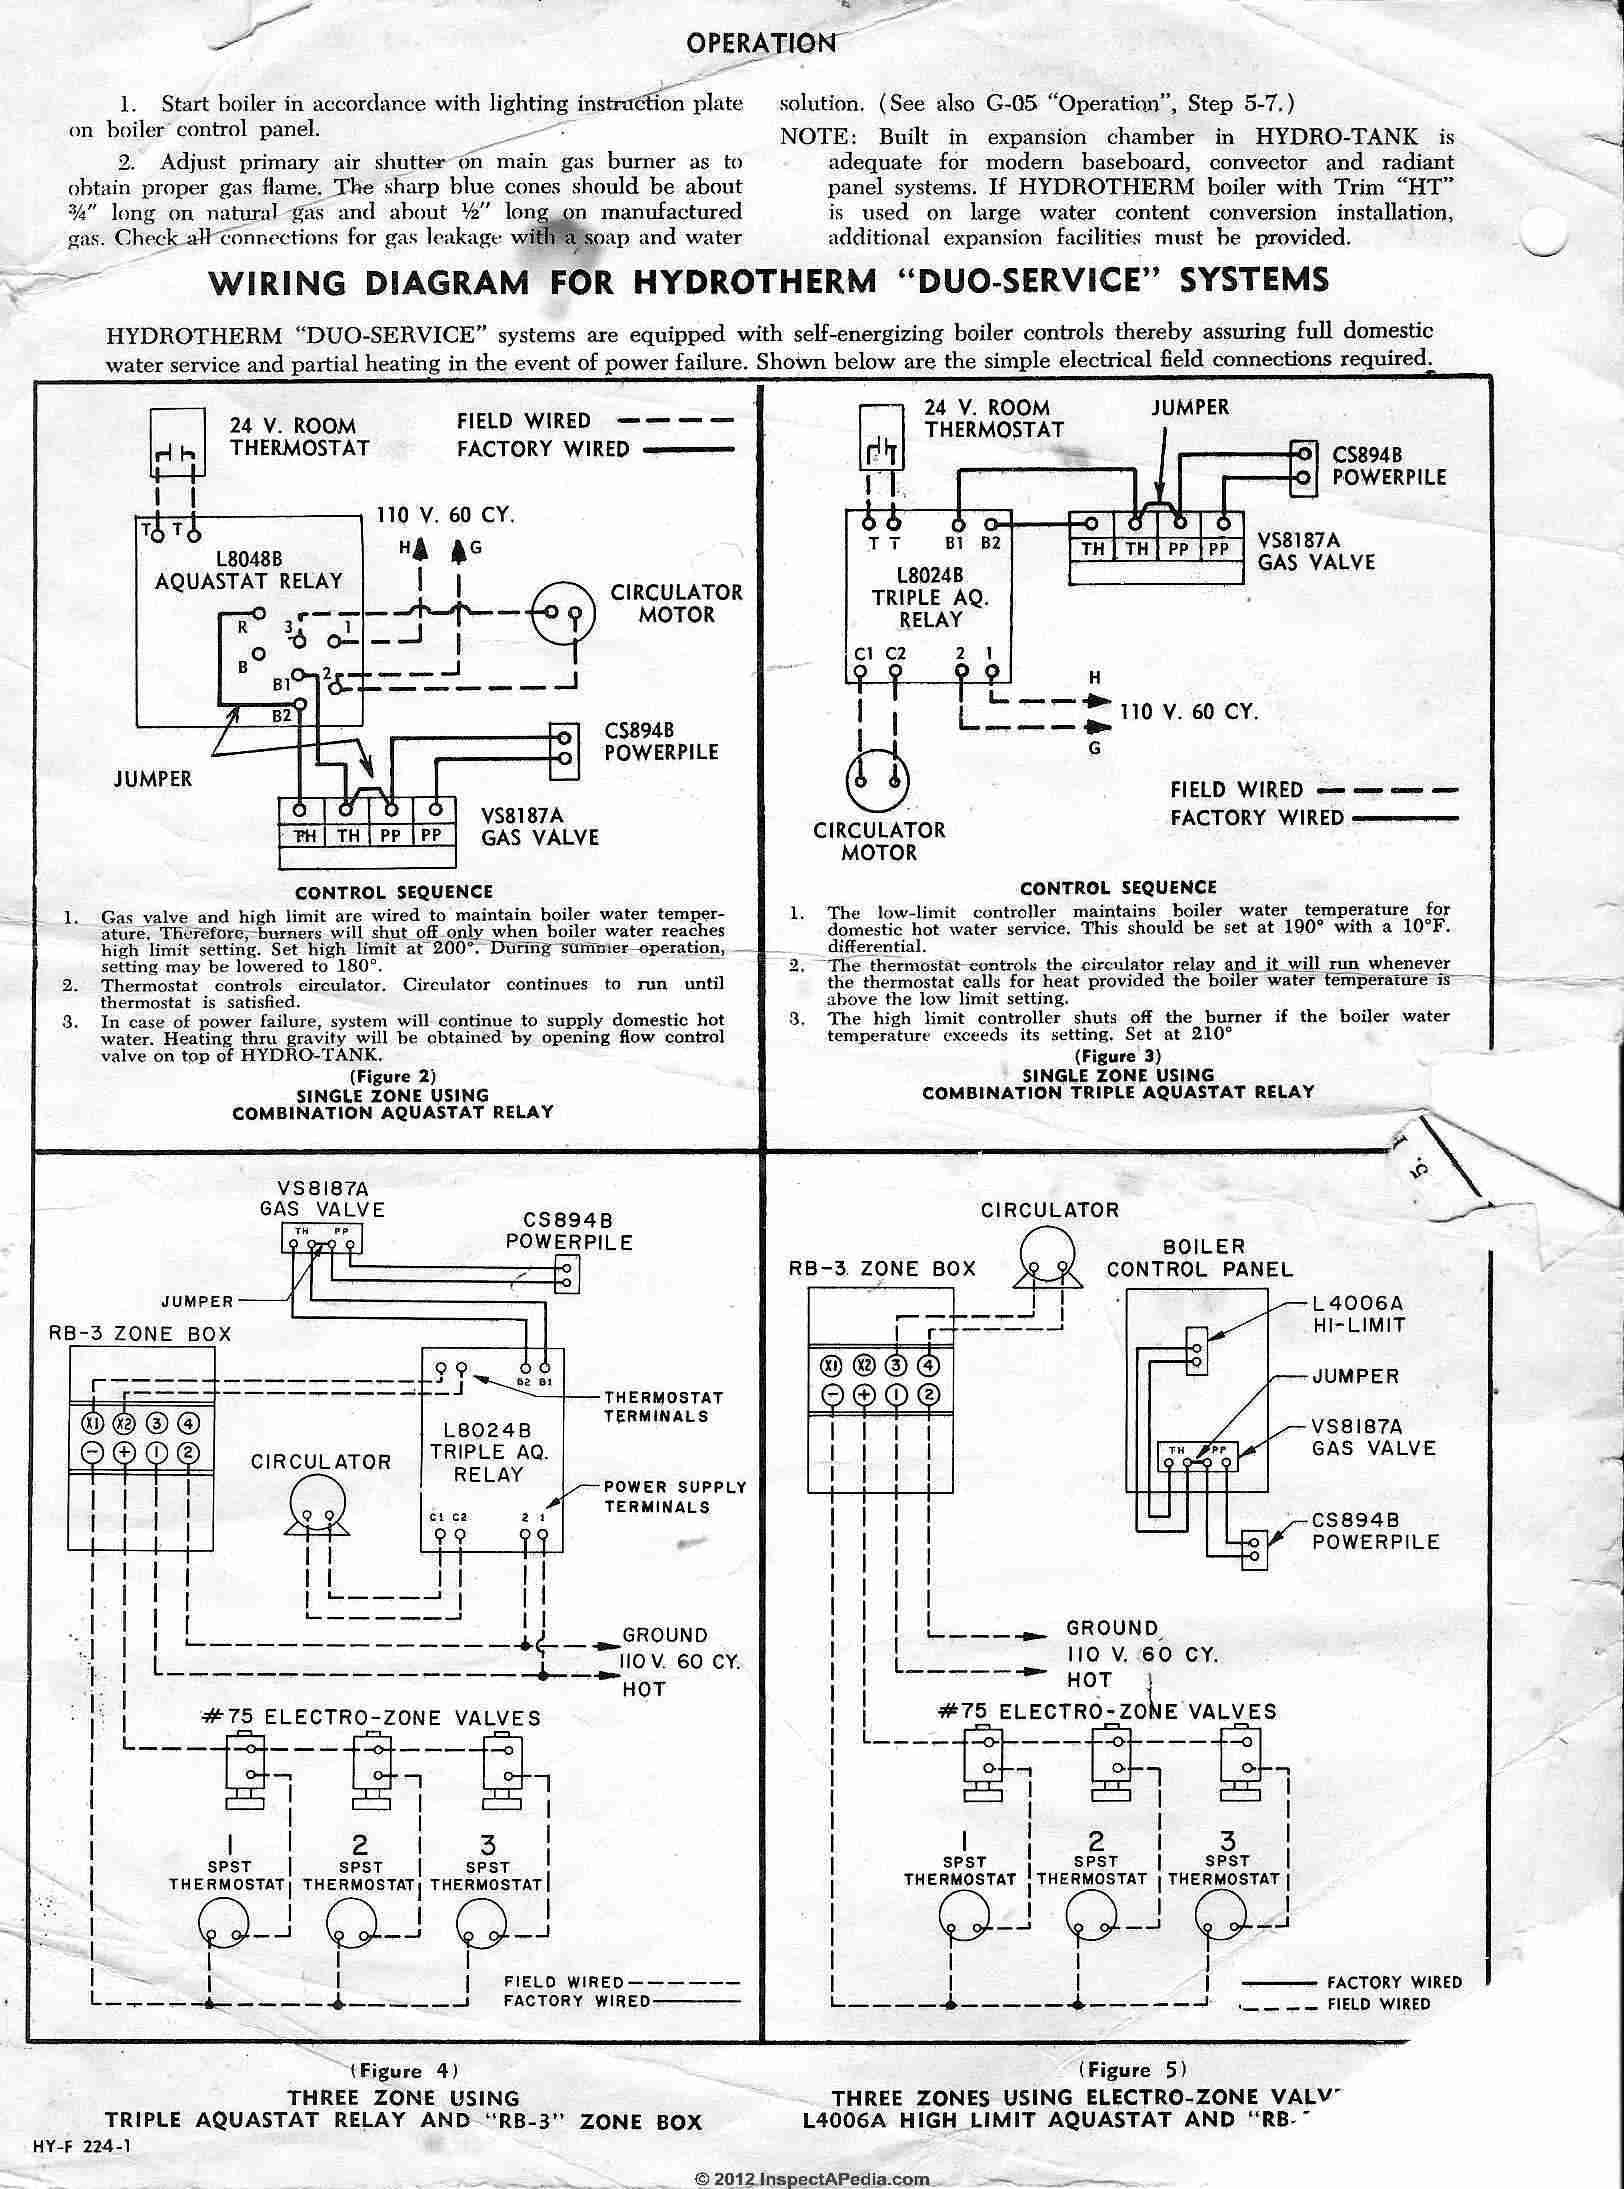 L8024B_Aquastat_0422_DJFcs heating boiler aquastat control diagnosis, troubleshooting, repair Control Relay Wiring Diagram at gsmx.co